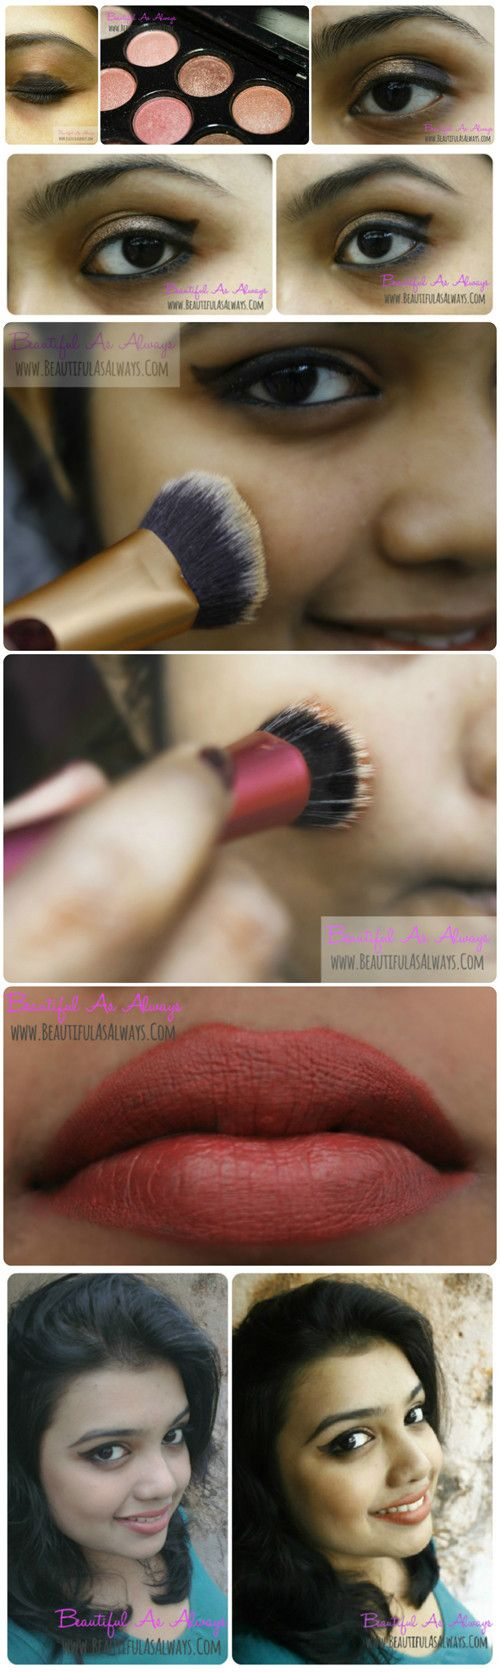 Beautiful As Always | How To Do Makeup for New Year Party | http://www.beautifulasalways.com